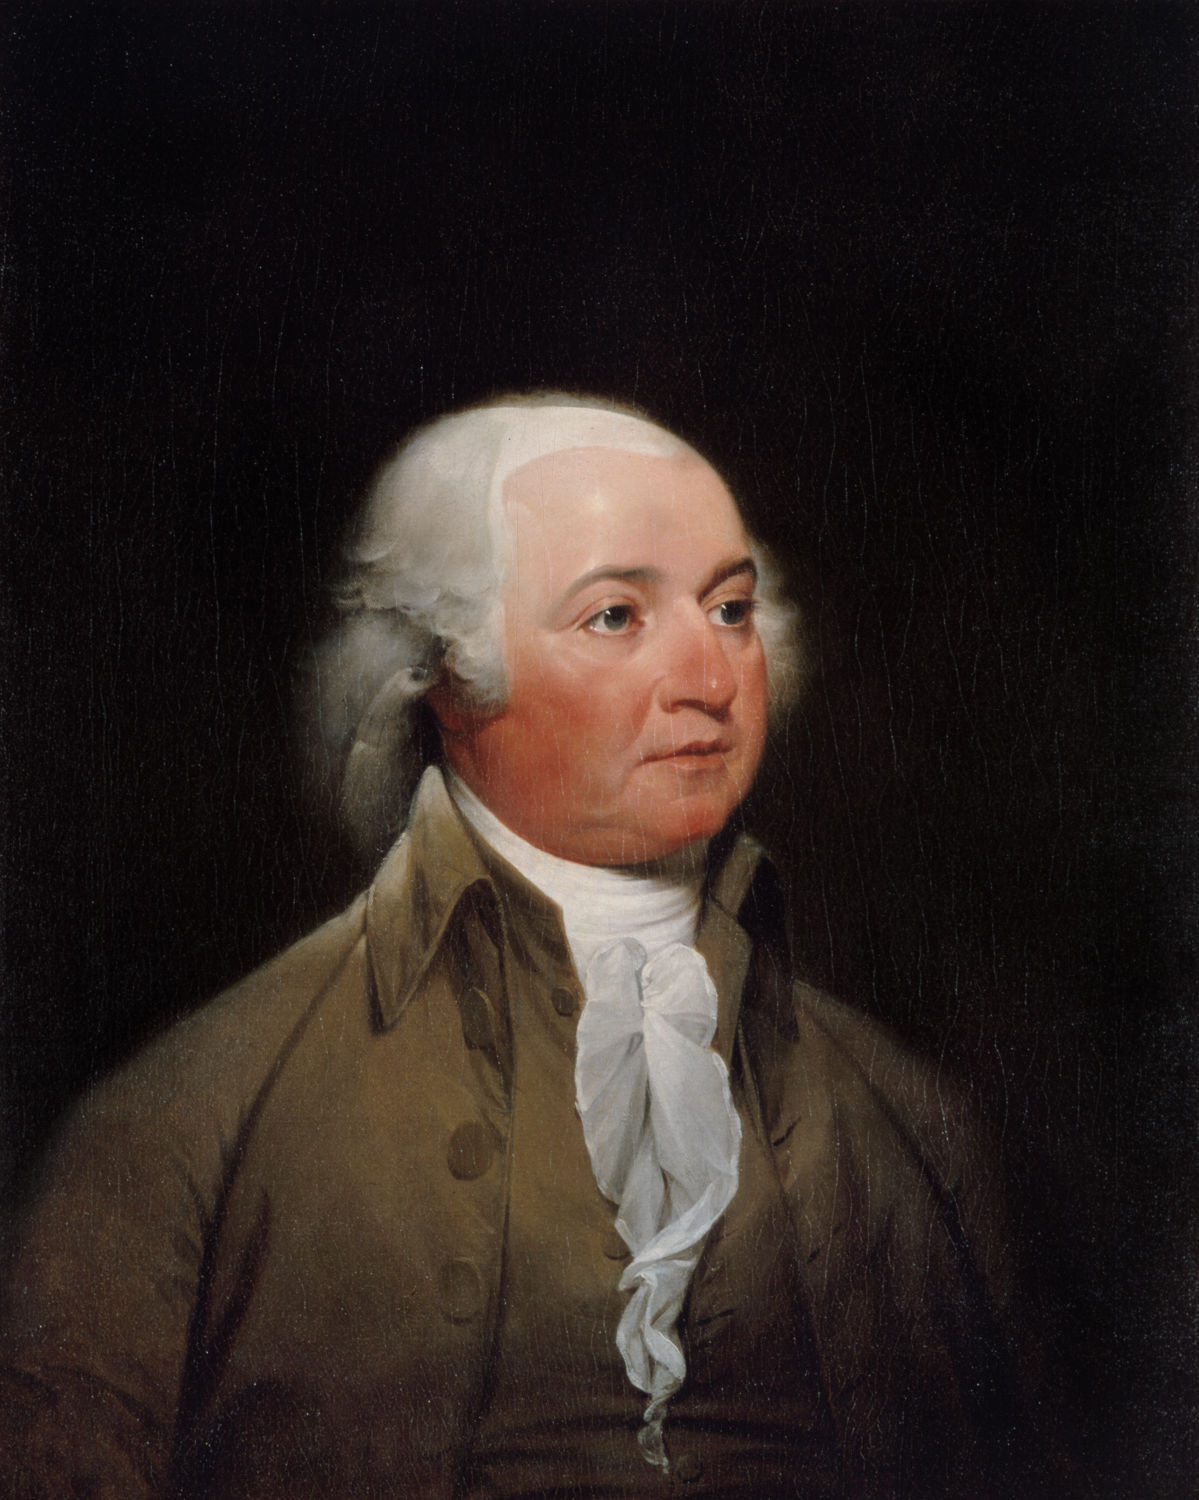 john adams Find out more about the history of john adams, including videos, interesting articles, pictures, historical features and more get all the facts on historycom.